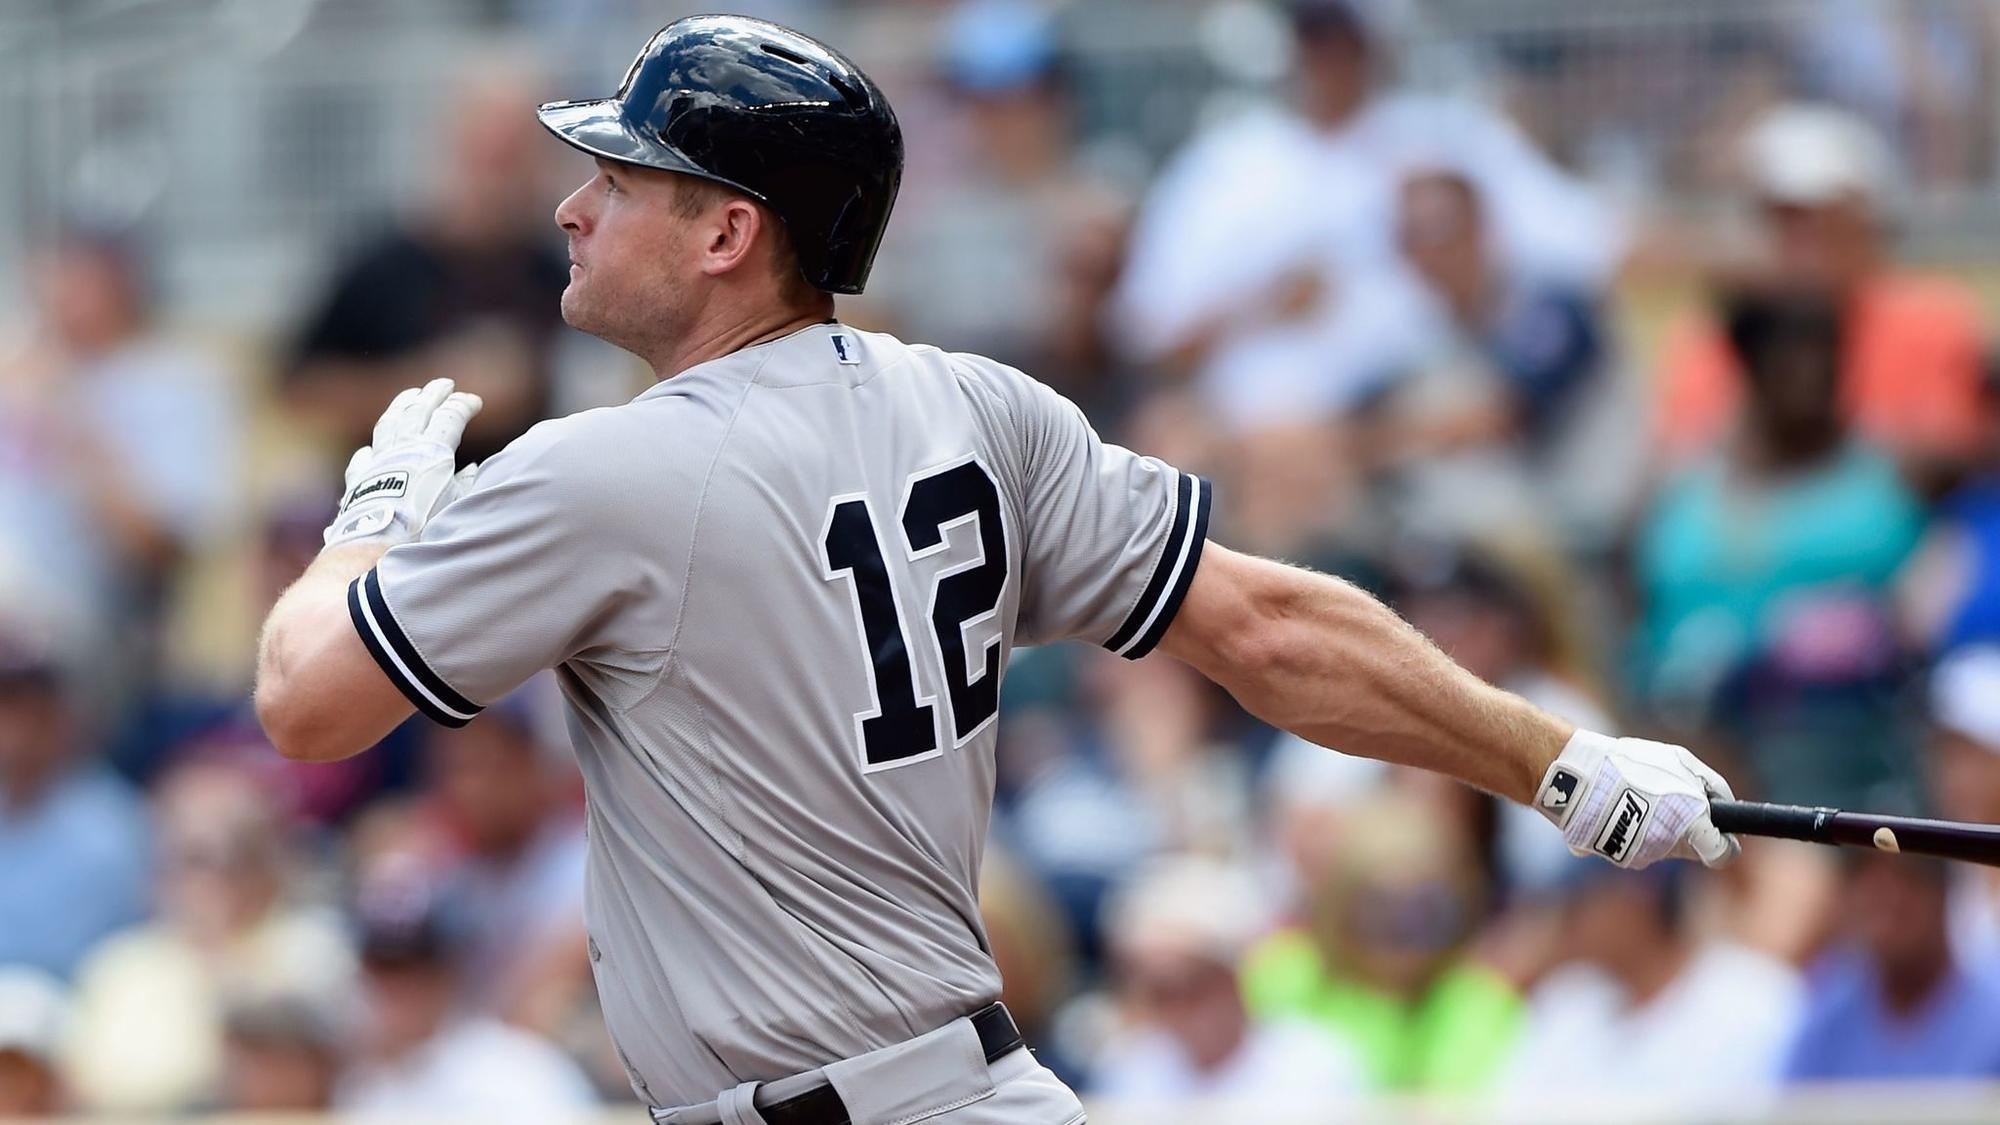 Sd-sp-padres-reacquire-headley-mitchell-yankees-blash20171212